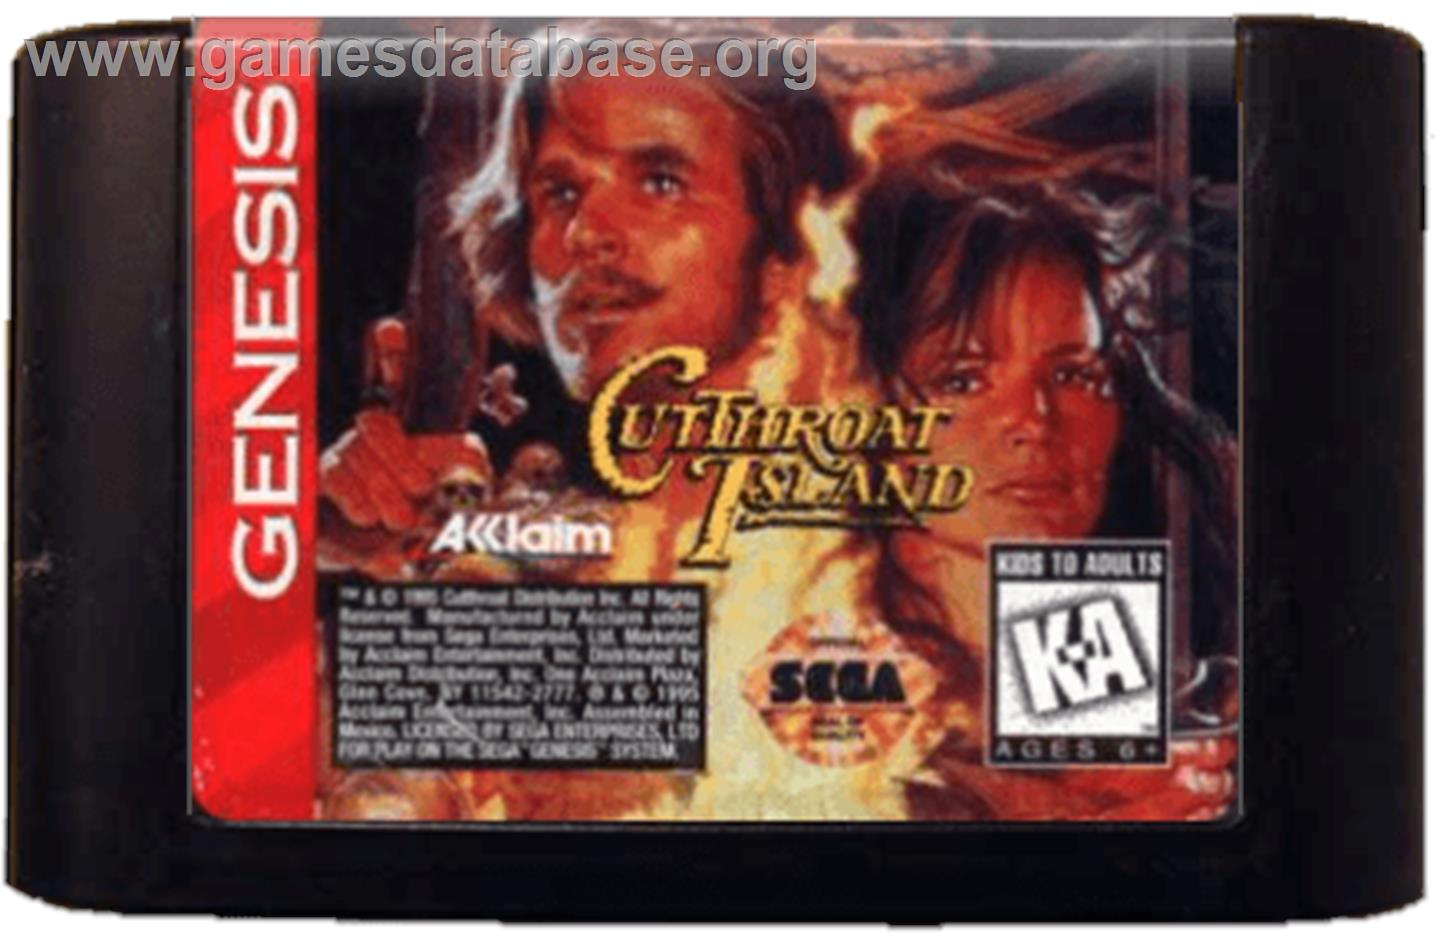 Cutthroat Island - Sega Genesis - Artwork - Cartridge